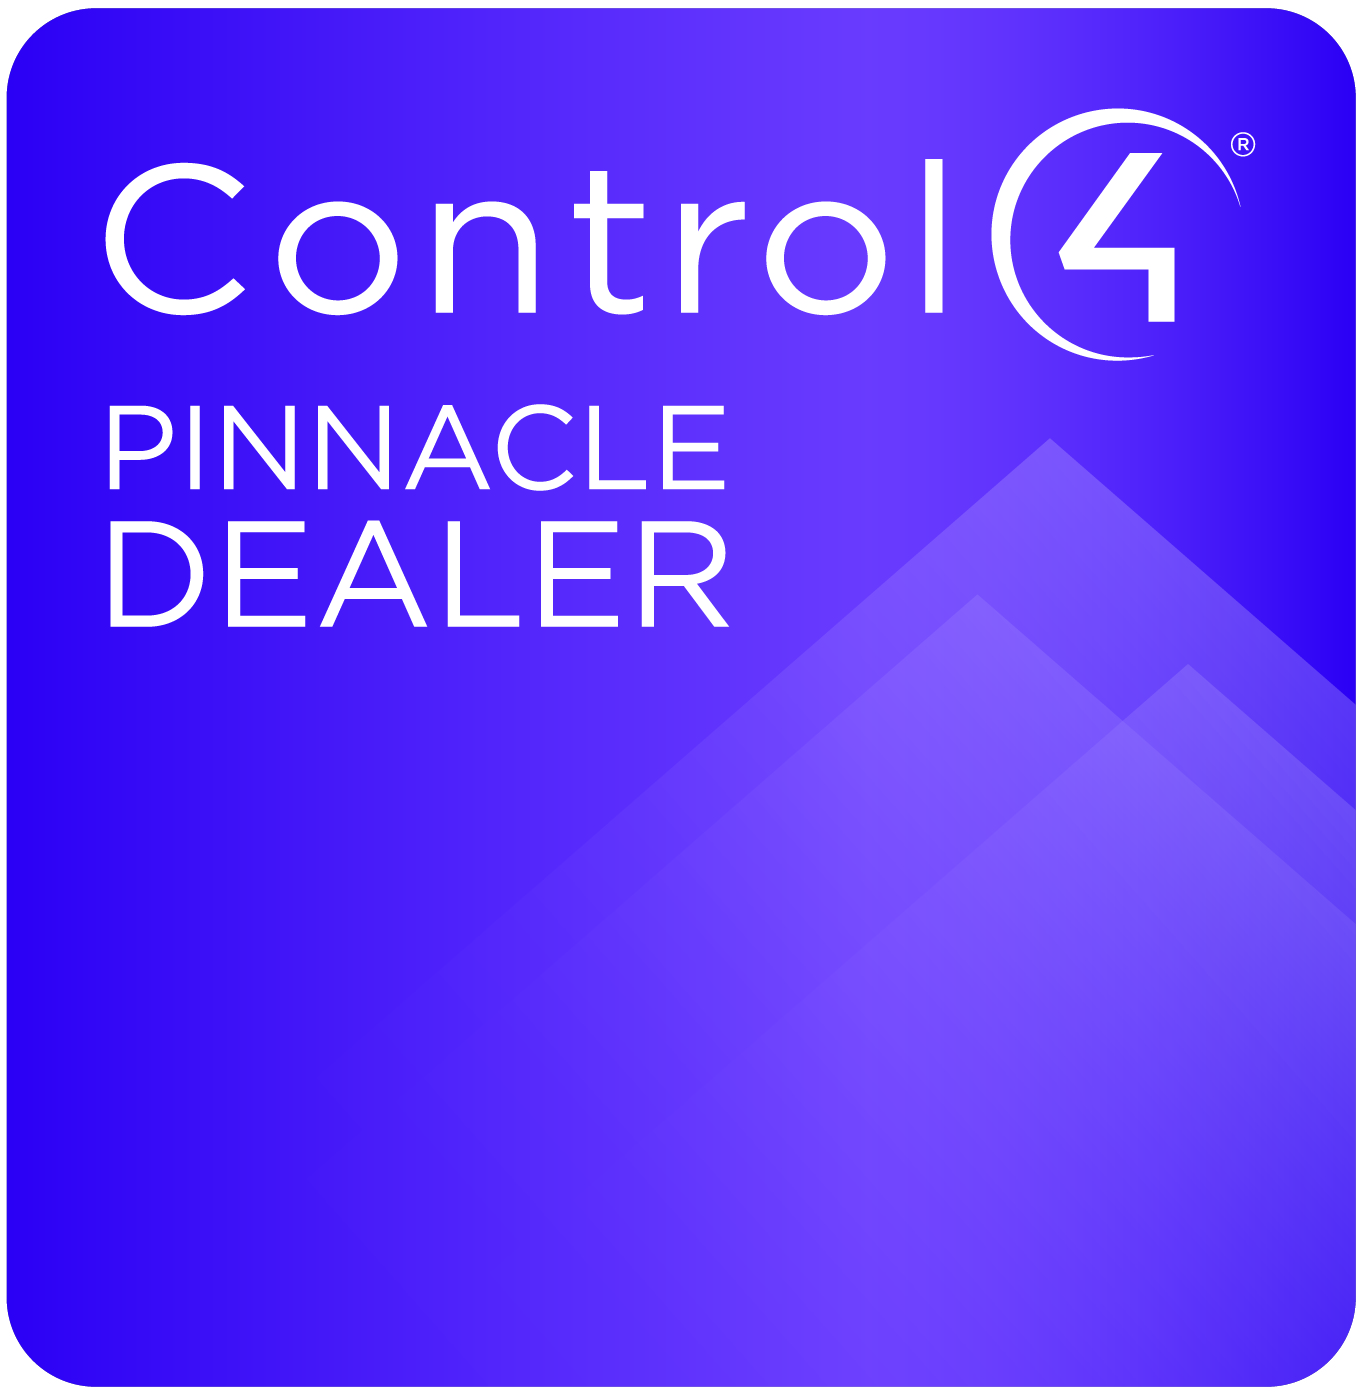 New Control4 Pinnacle logo